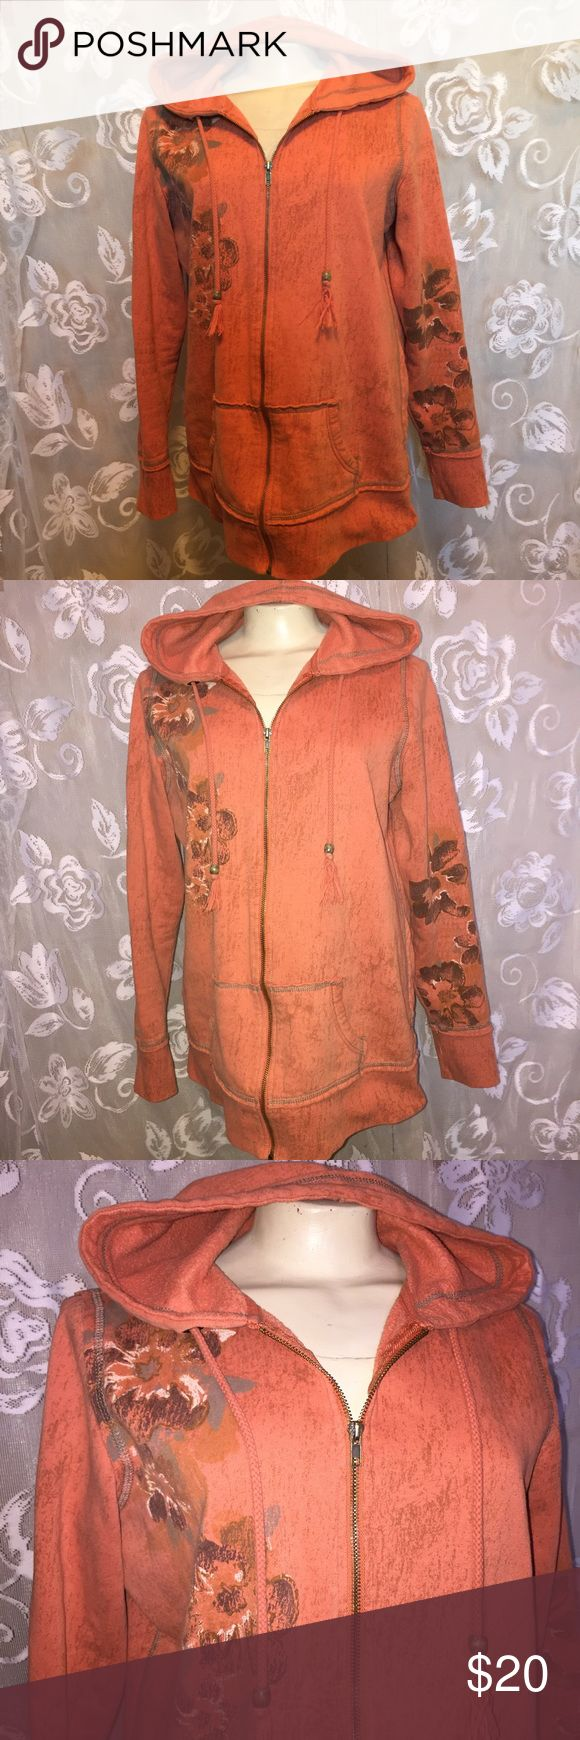 Maurices orange boho full zip hoodie sweatshirt Maurices women's plus size 0. Cute orange BoHo Bohemian full zip hoodie sweatshirt.   ~ I am open to reasonable offers. ~I do my best to describe each item thoroughly. If something is missed it is completely unintentional.  ~Be sure to check out my other listings for more great items & save on shipping! ~I ship same day or next day.  ~ I do not hold items.   ~Not responsible for incorrect sizing. I go by what the tag says its up to the buyer to…